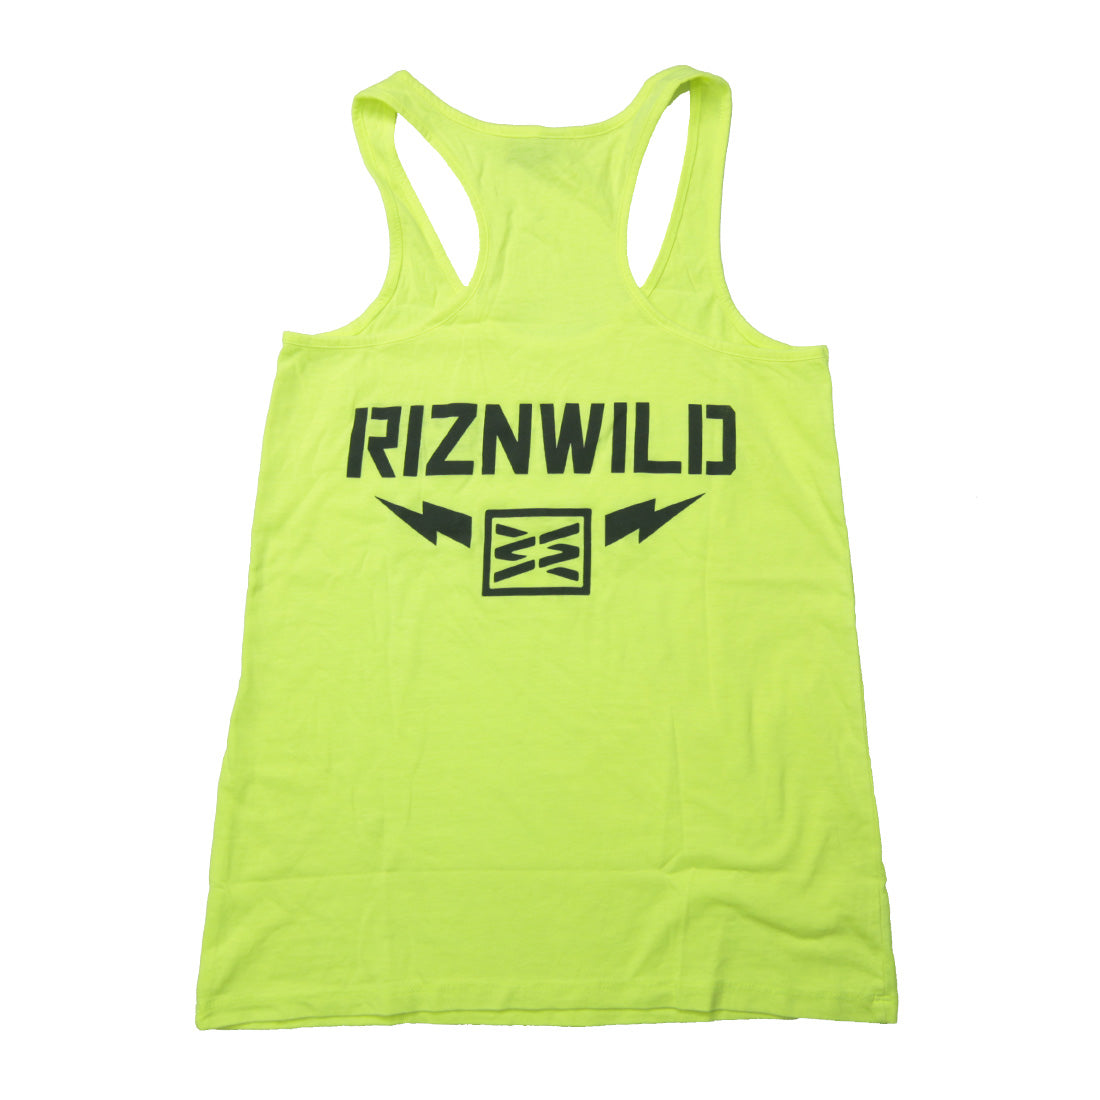 Thunder womens racerback tank in neon yellow